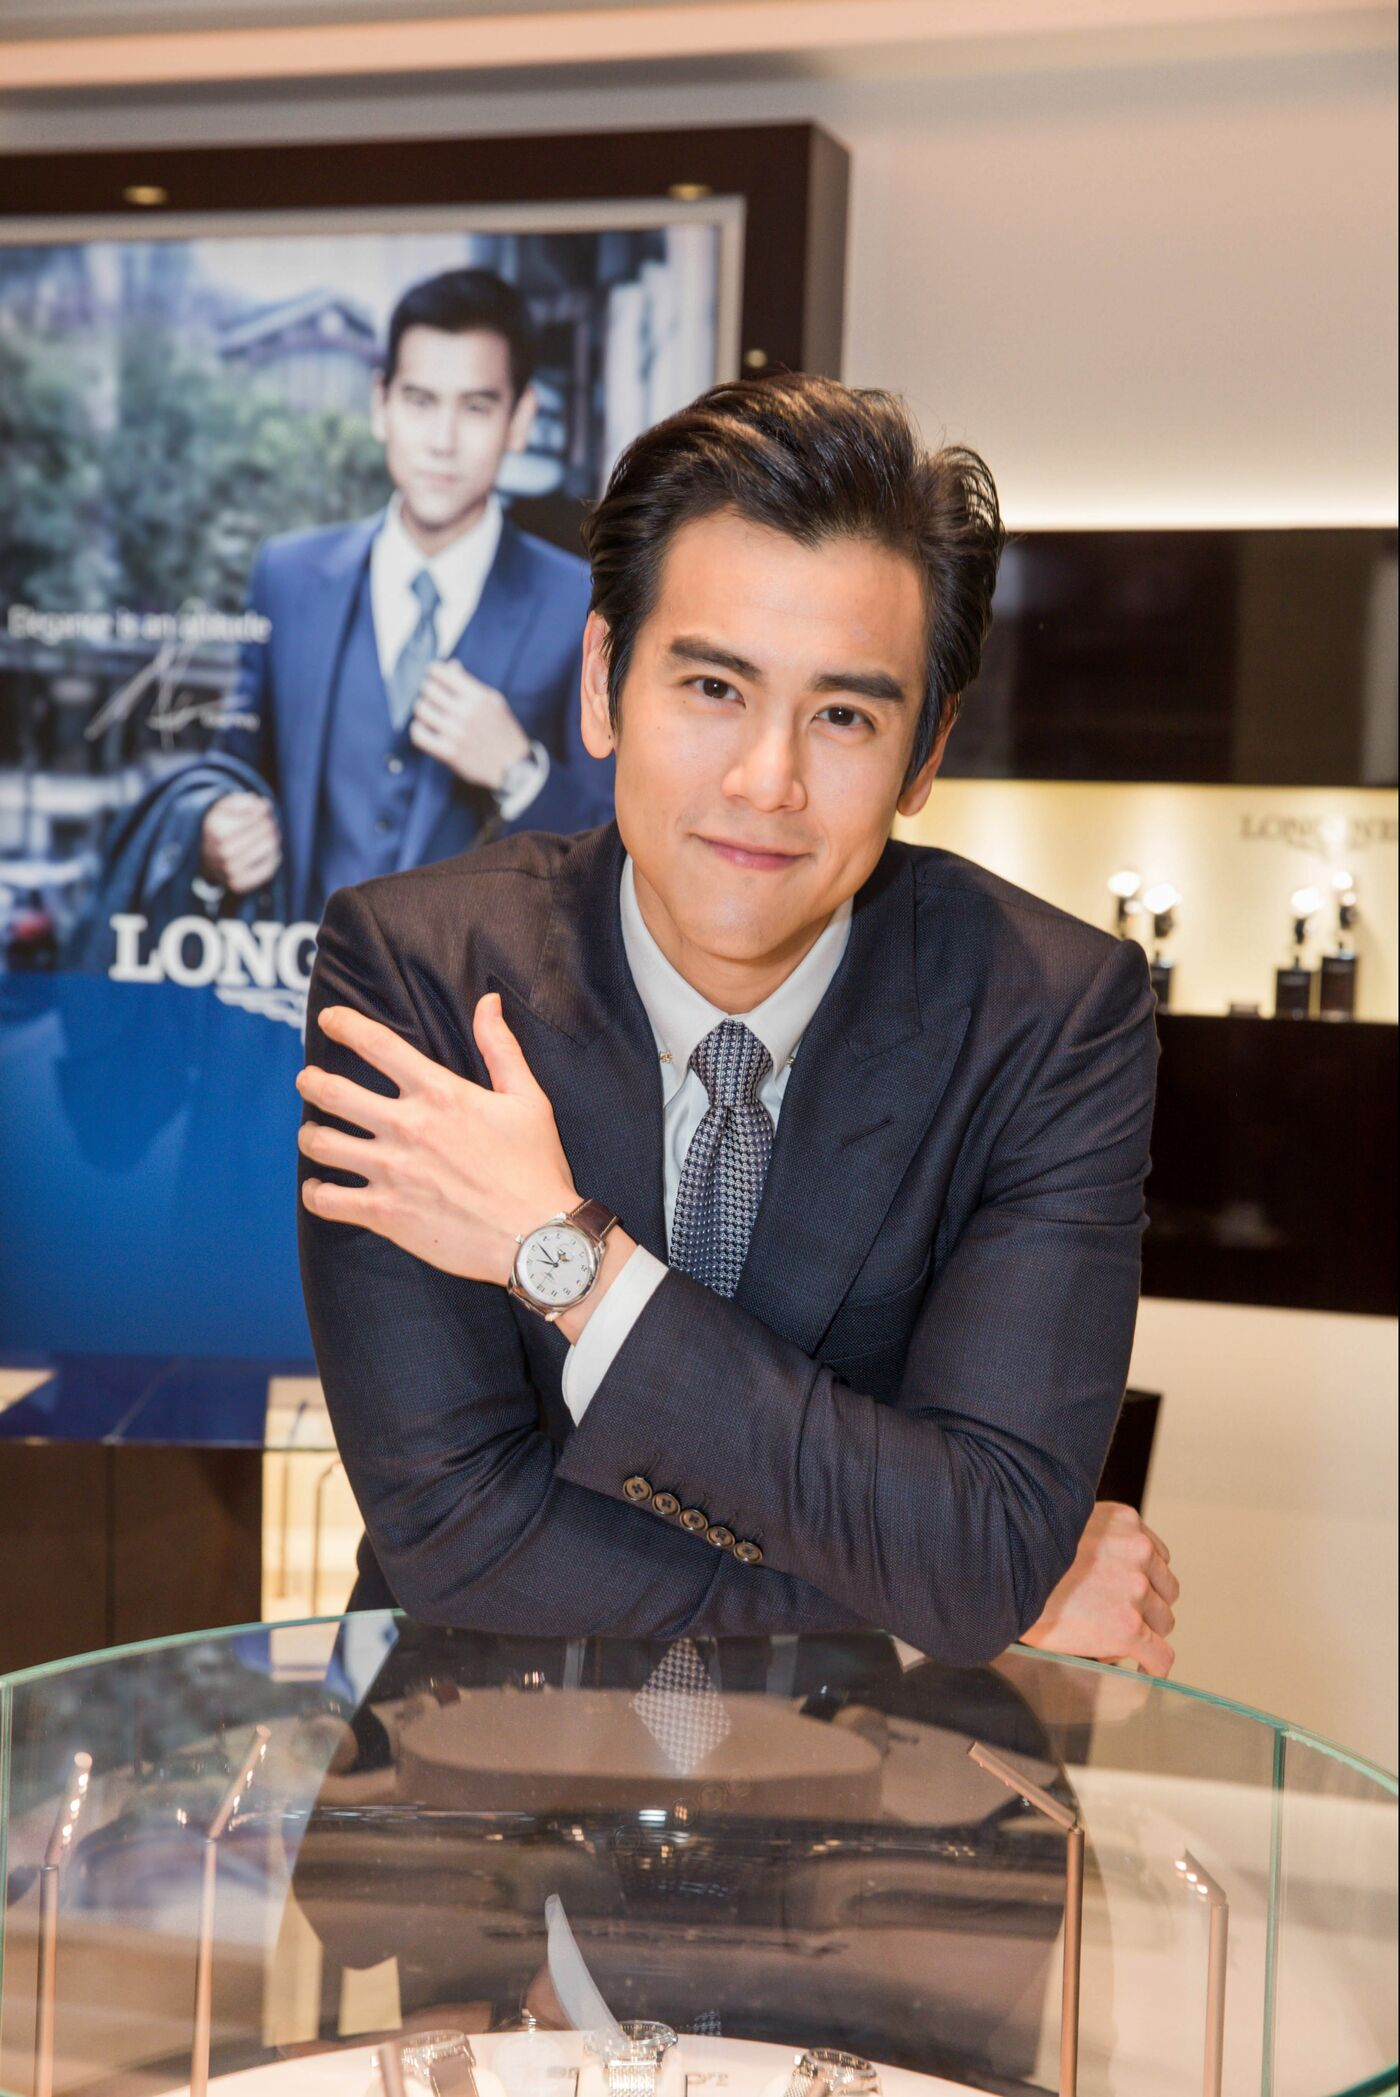 Longines Corporate Event: Grand opening of Longines Flagship Boutique and Super Heritage Corner in Macau S.A.R., China in presence of Eddie Peng 1